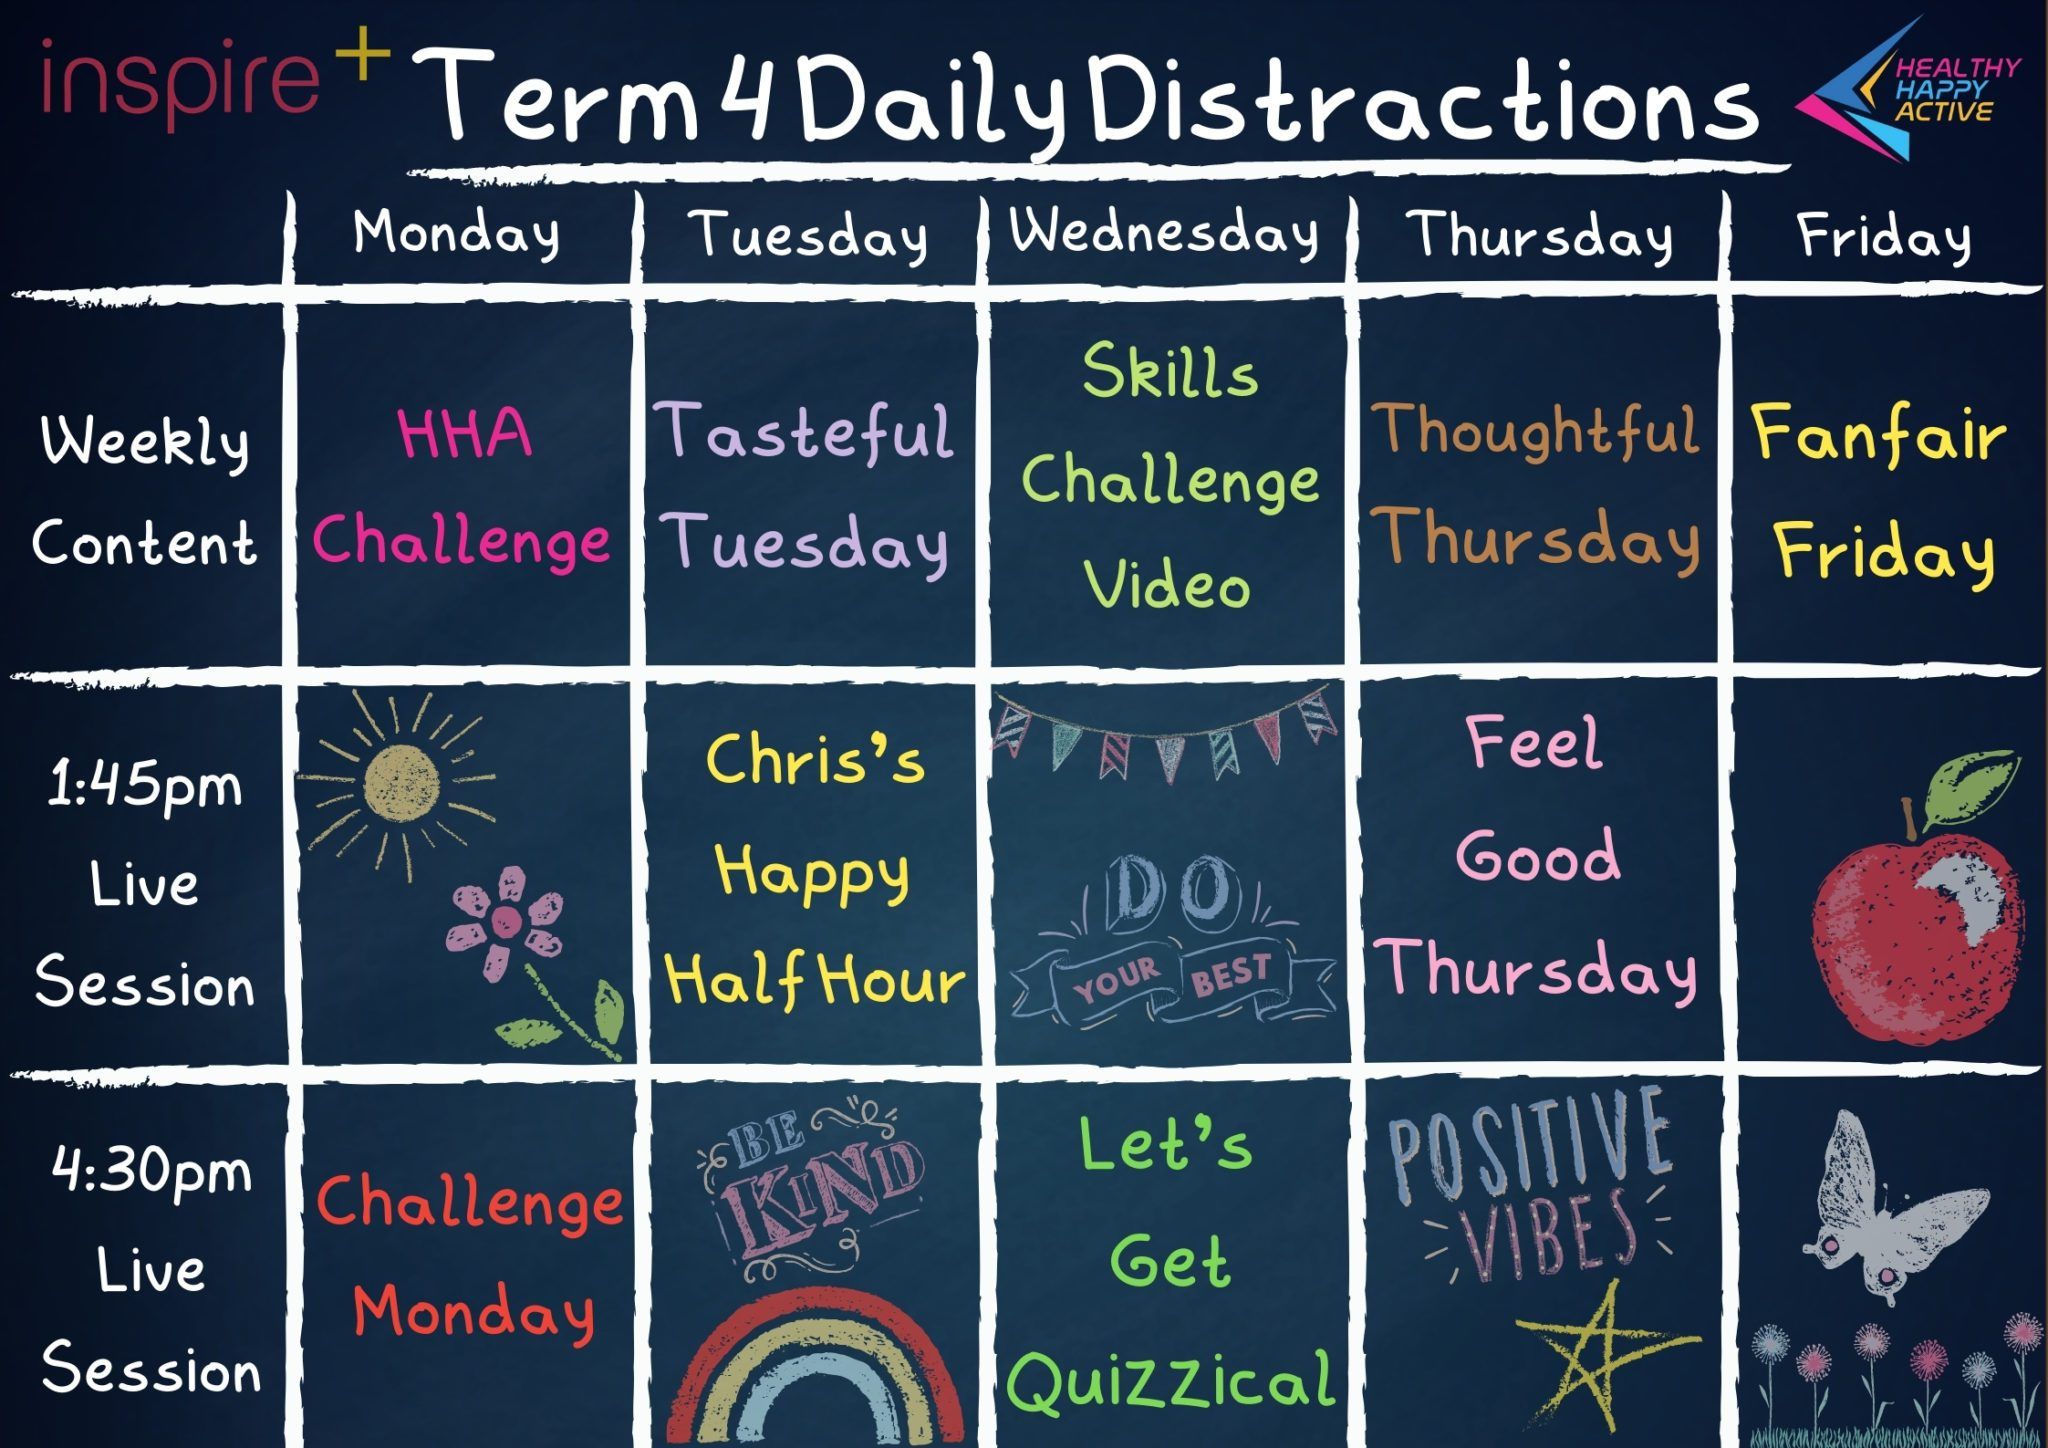 Term 4 Daily Distractions